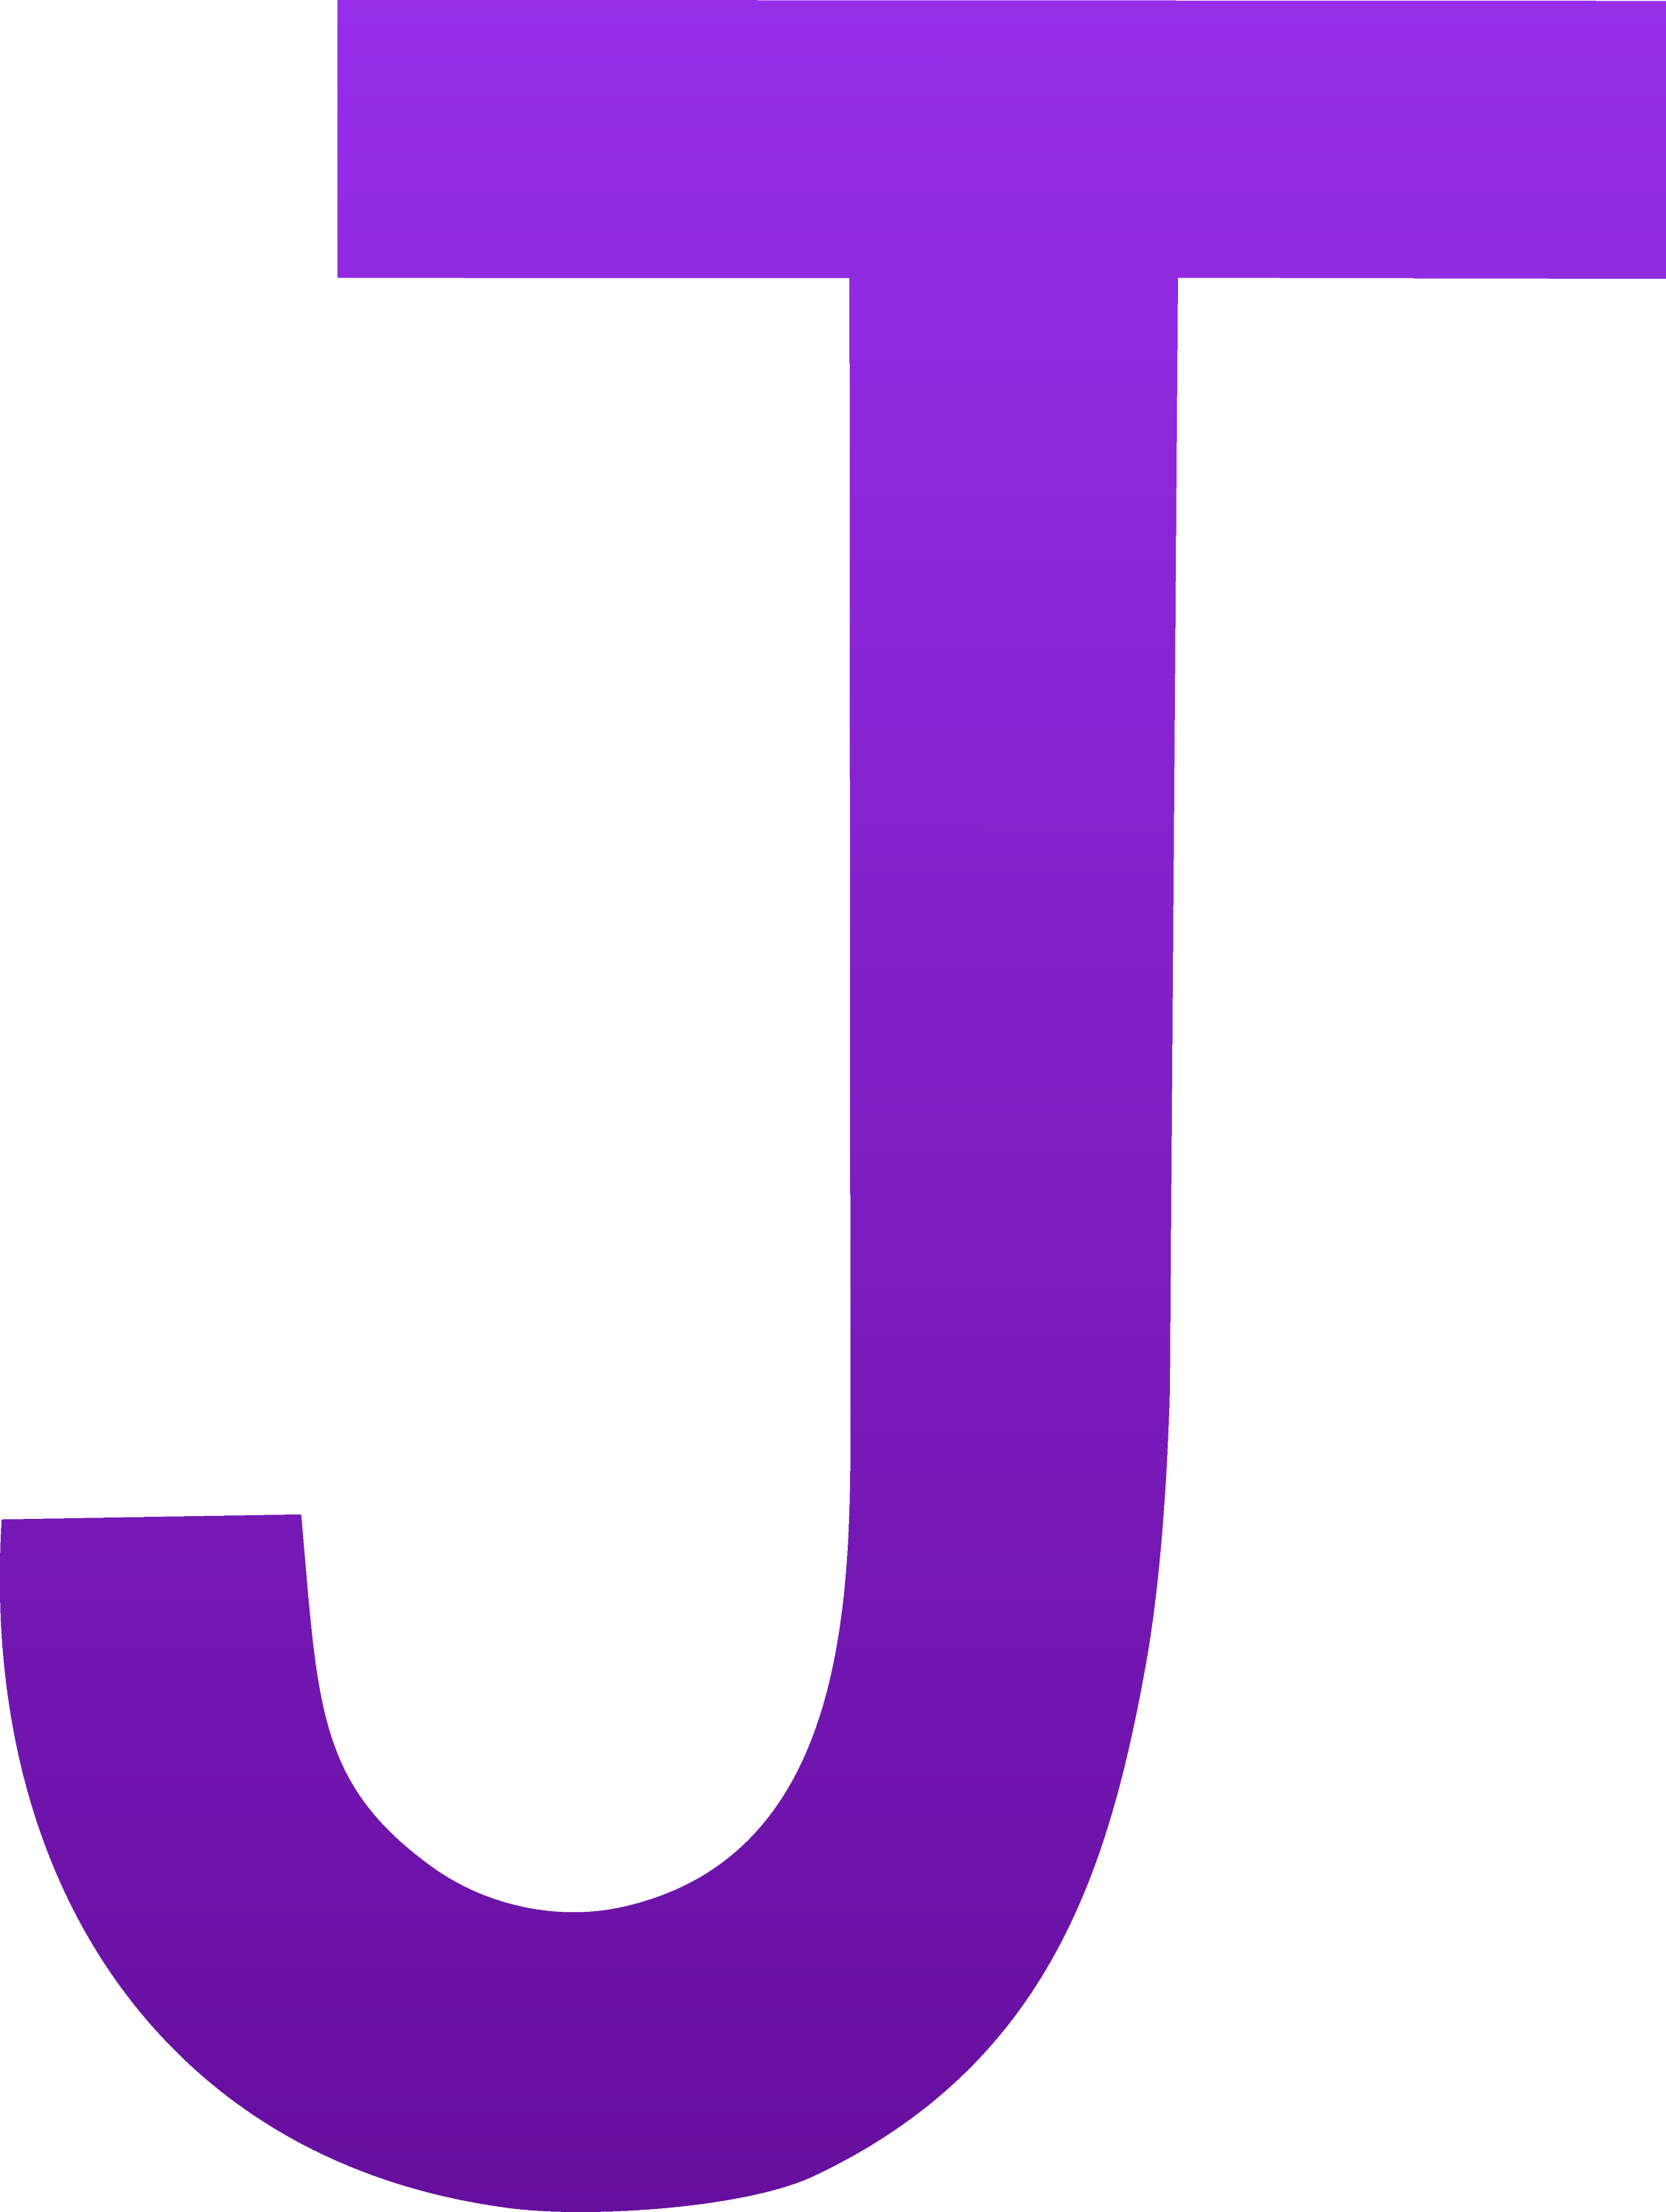 The Letter J - Free Clip Art